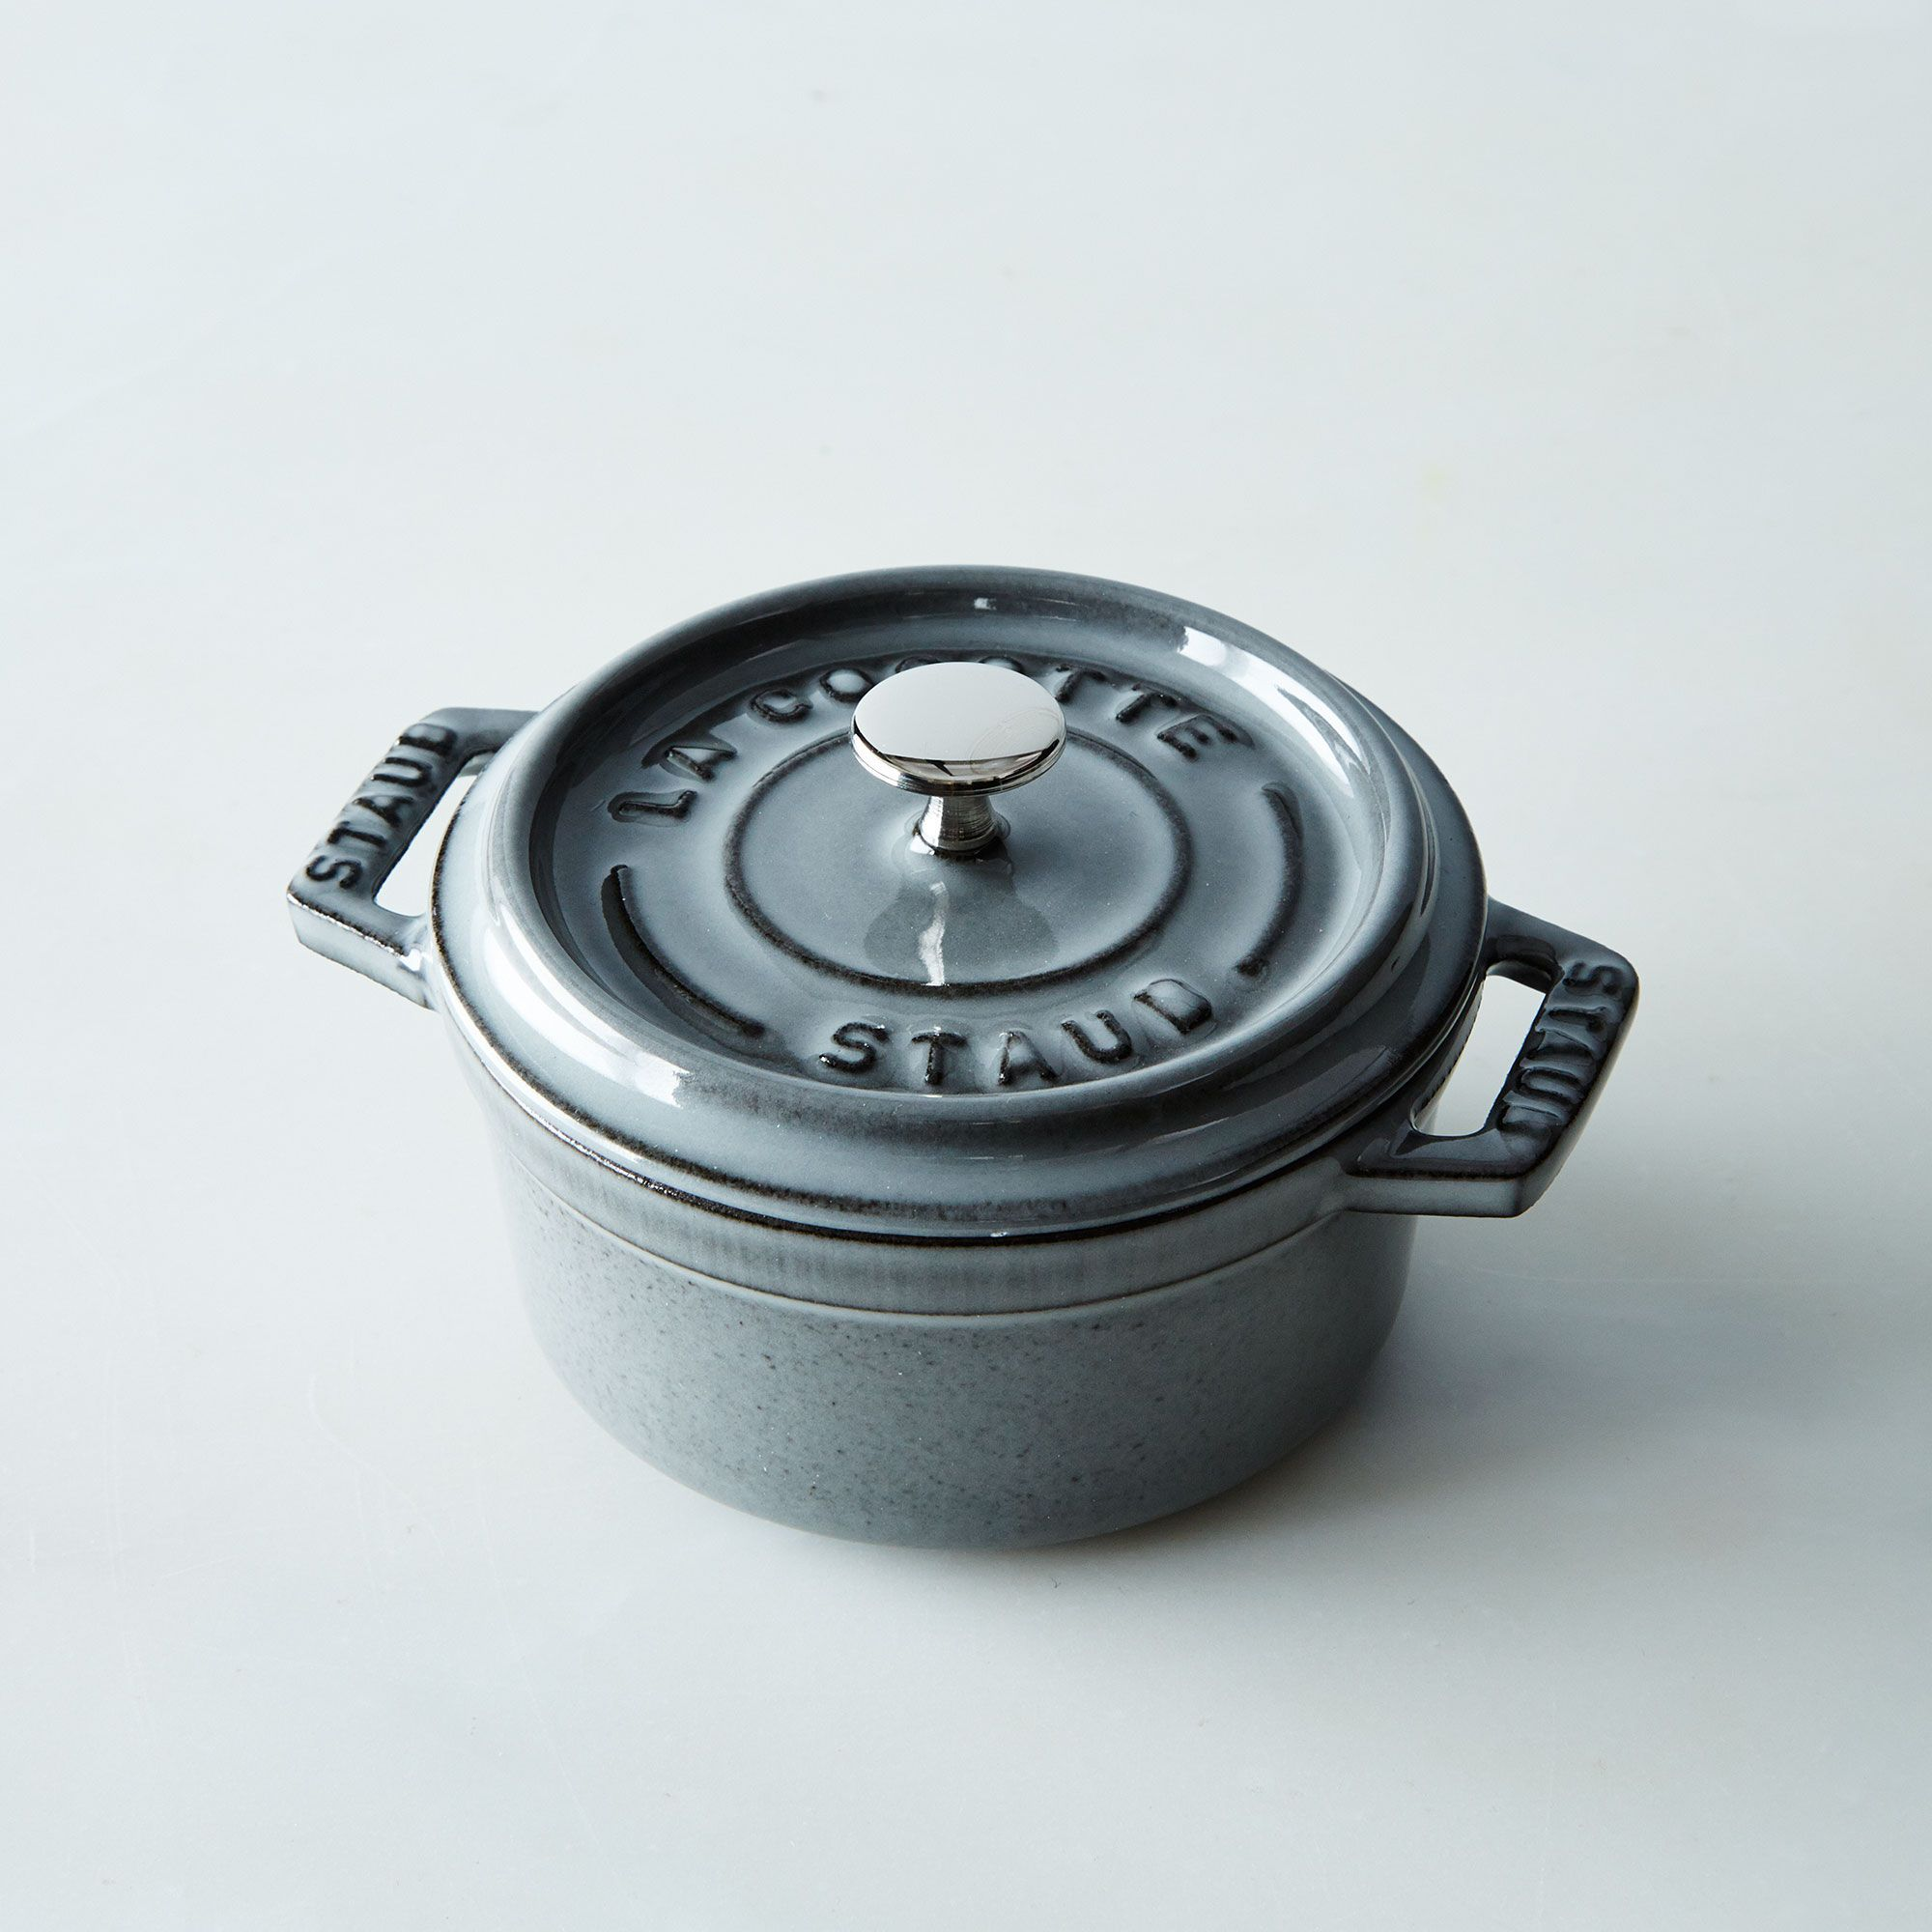 Buy Now Staub Mini Round Cocotte, 0.25QT – Graphite Before Special Offer Ends